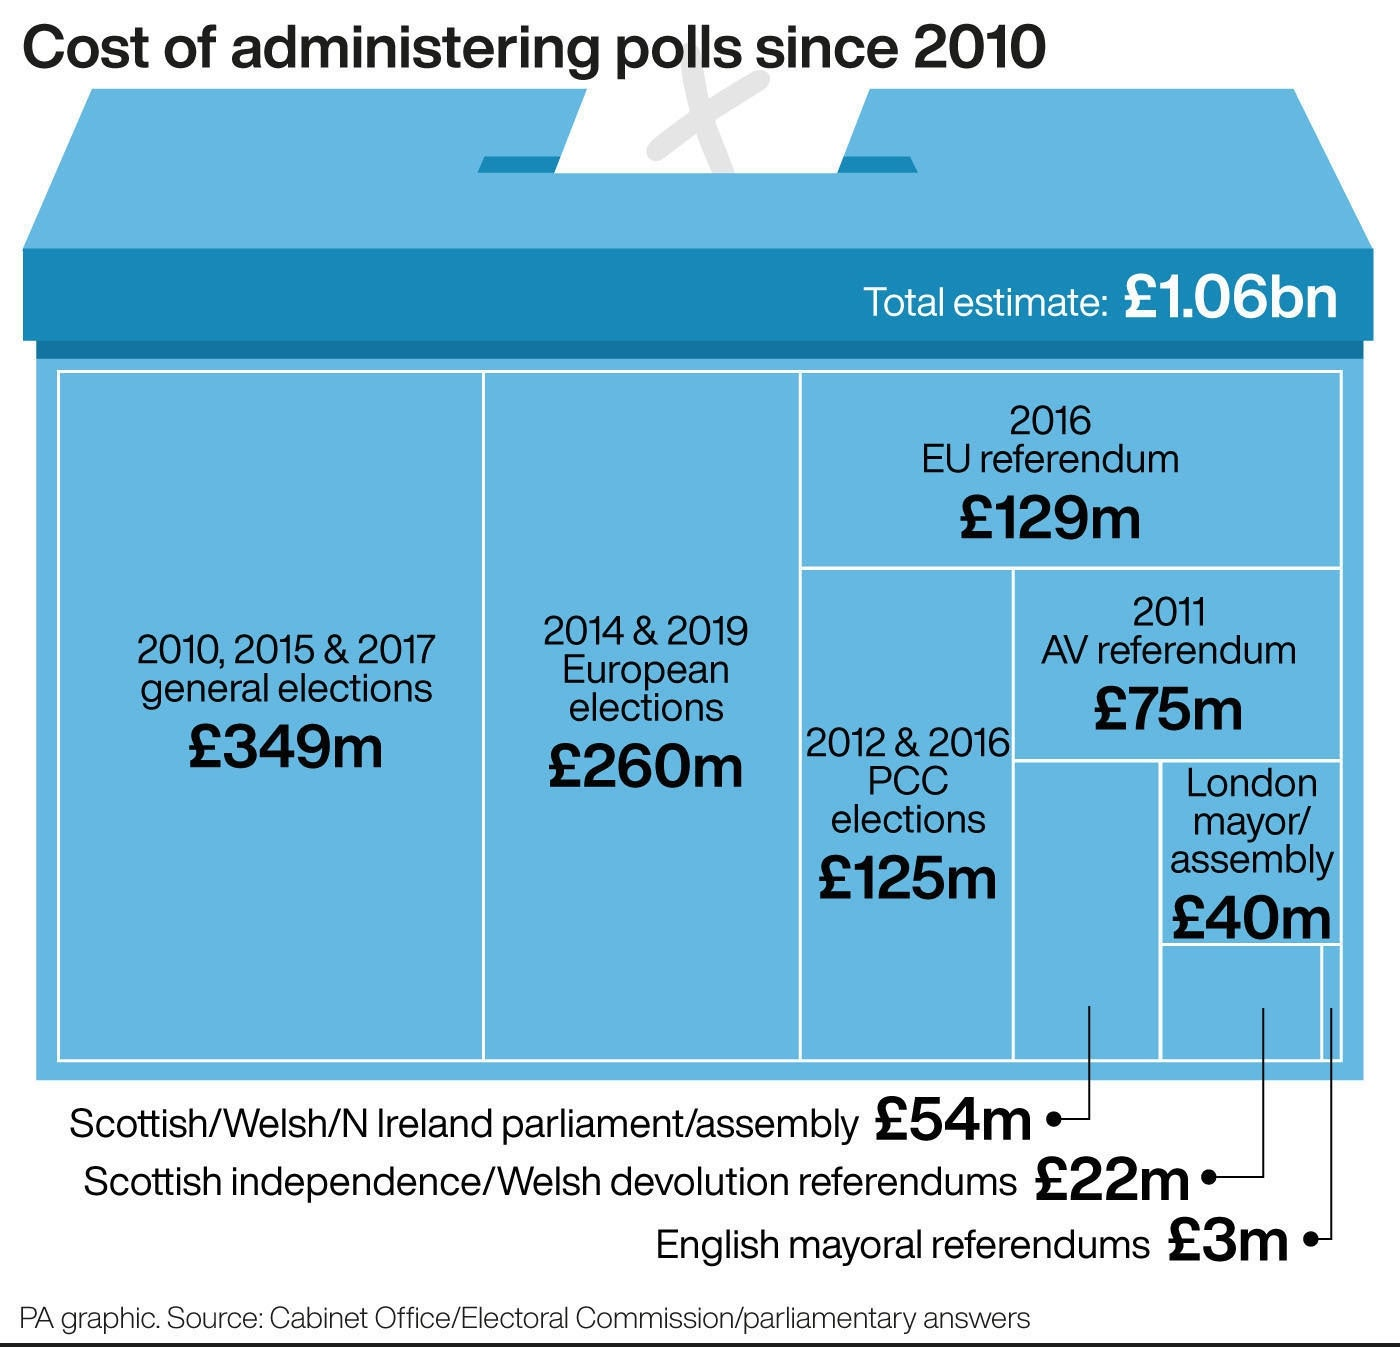 Cost of administering polls since 2010